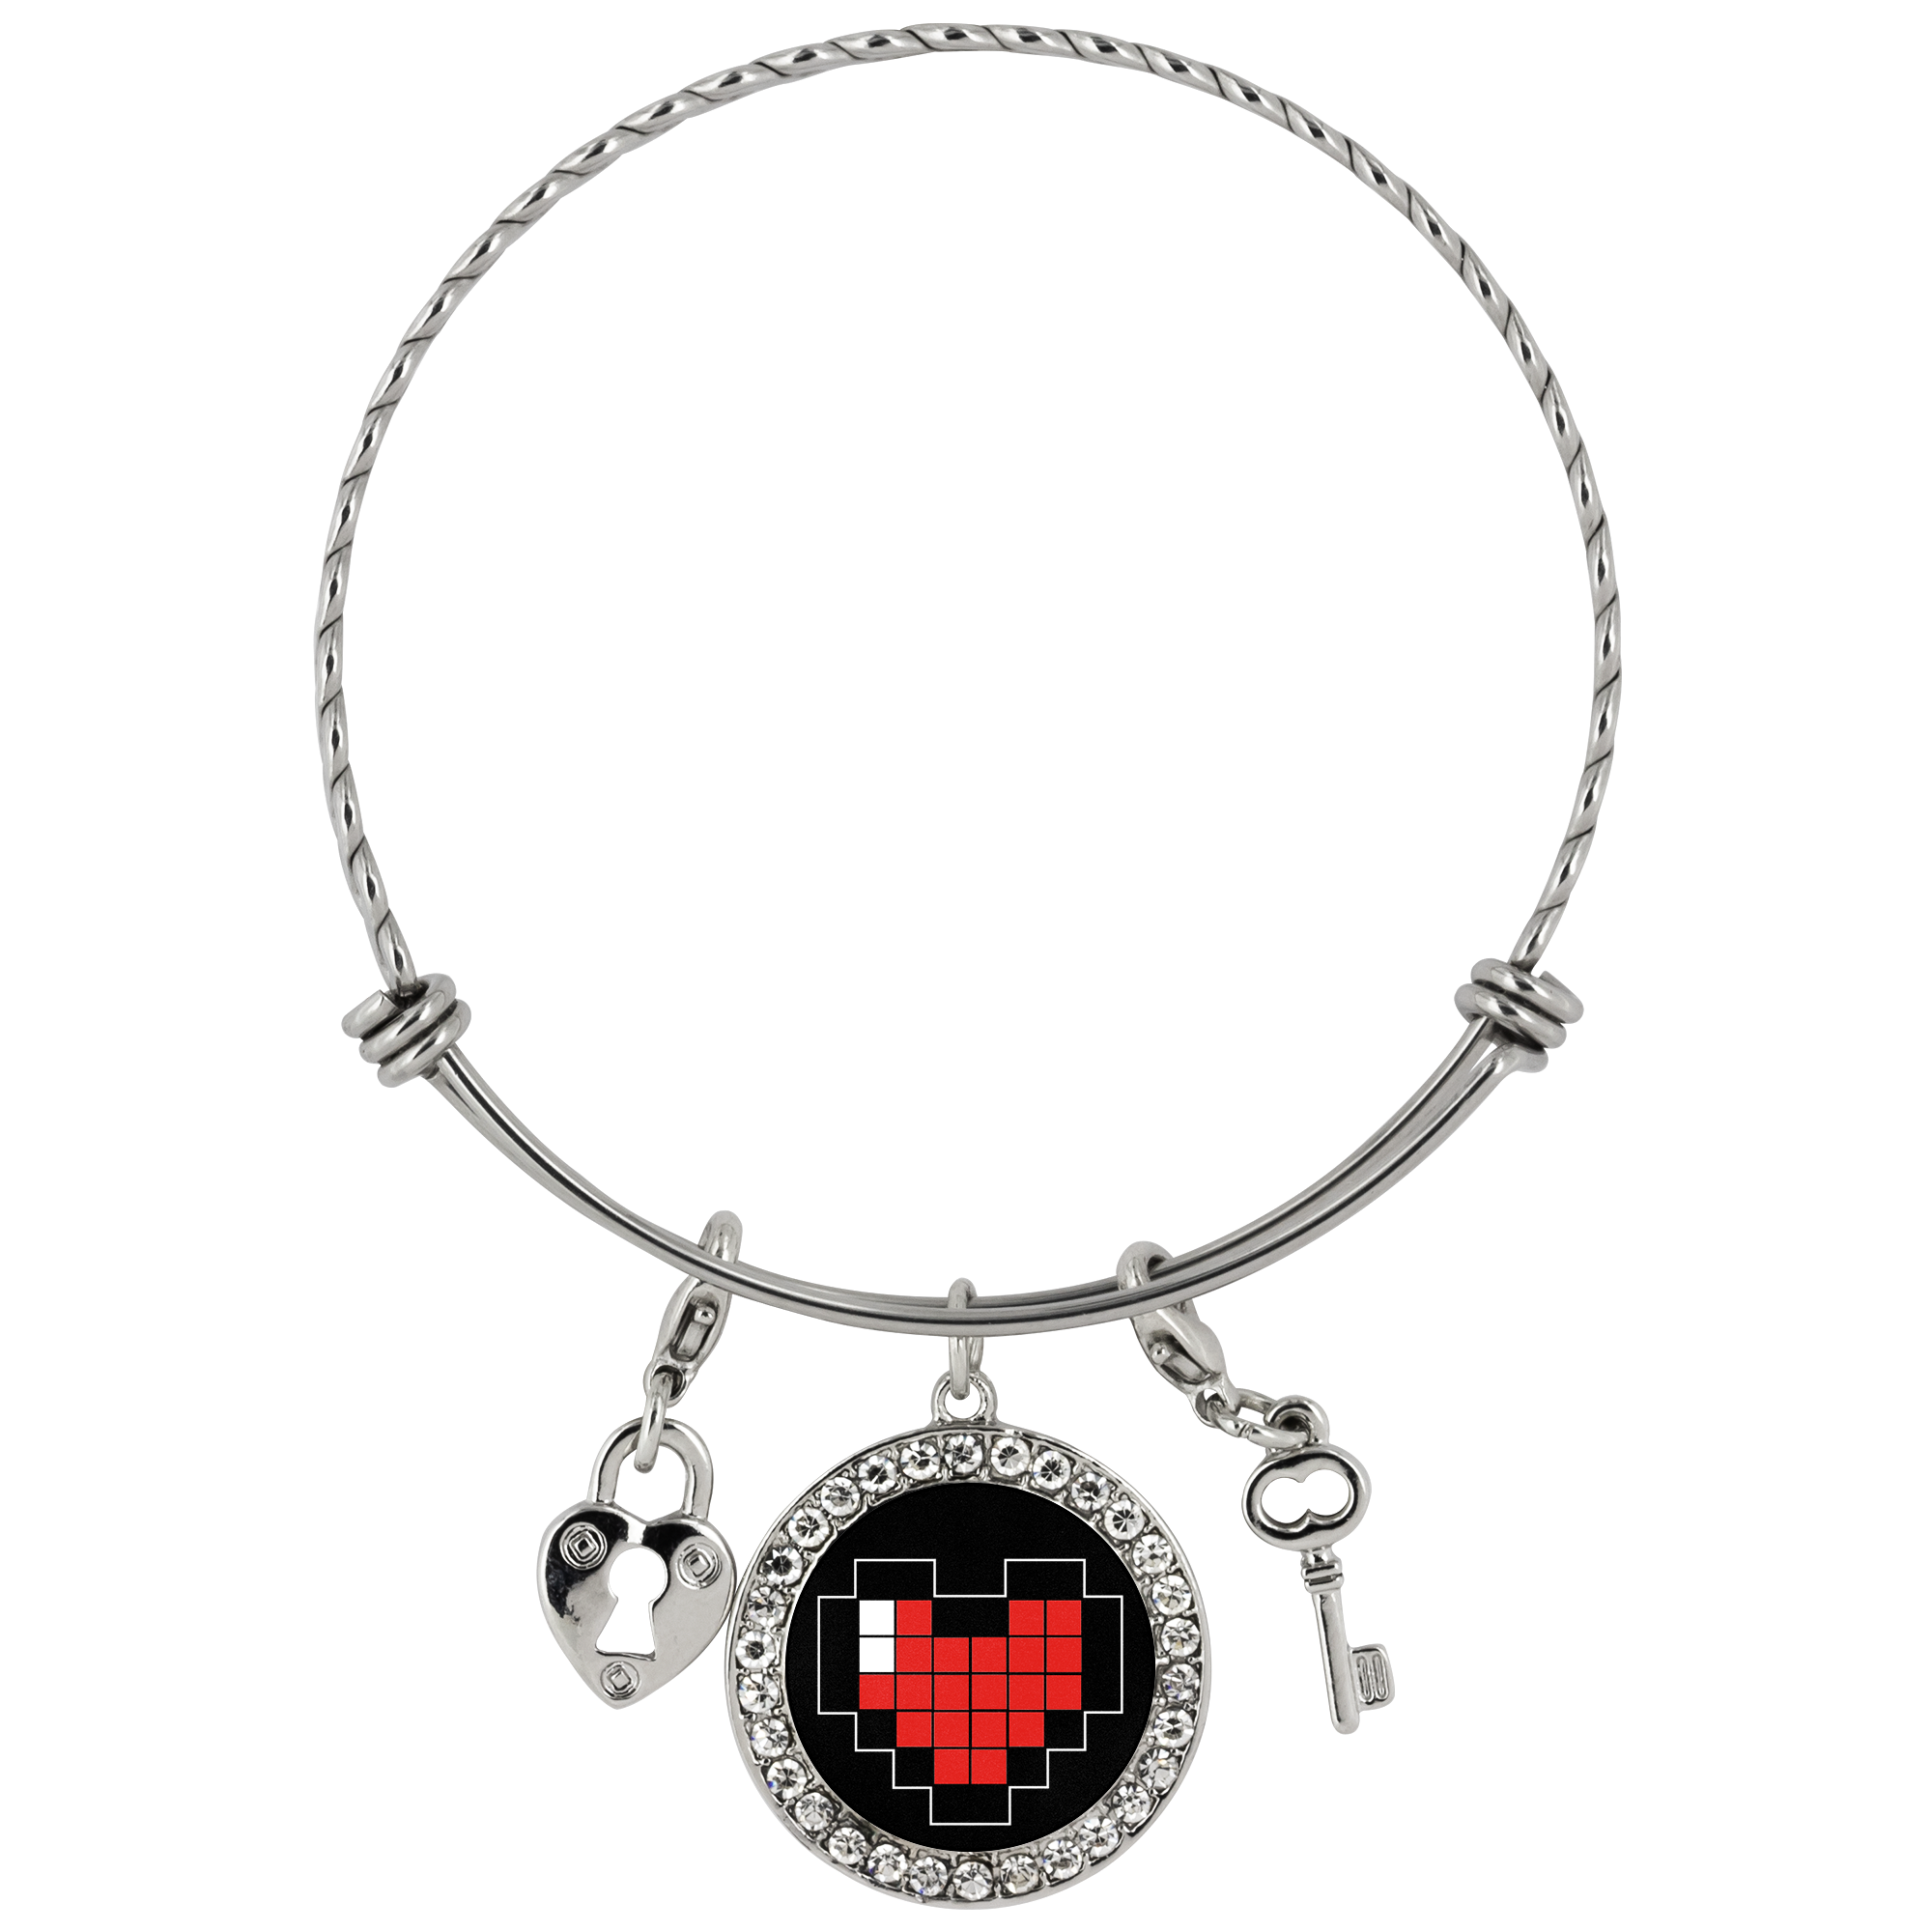 Pixelated Heart Chloe Bracelet